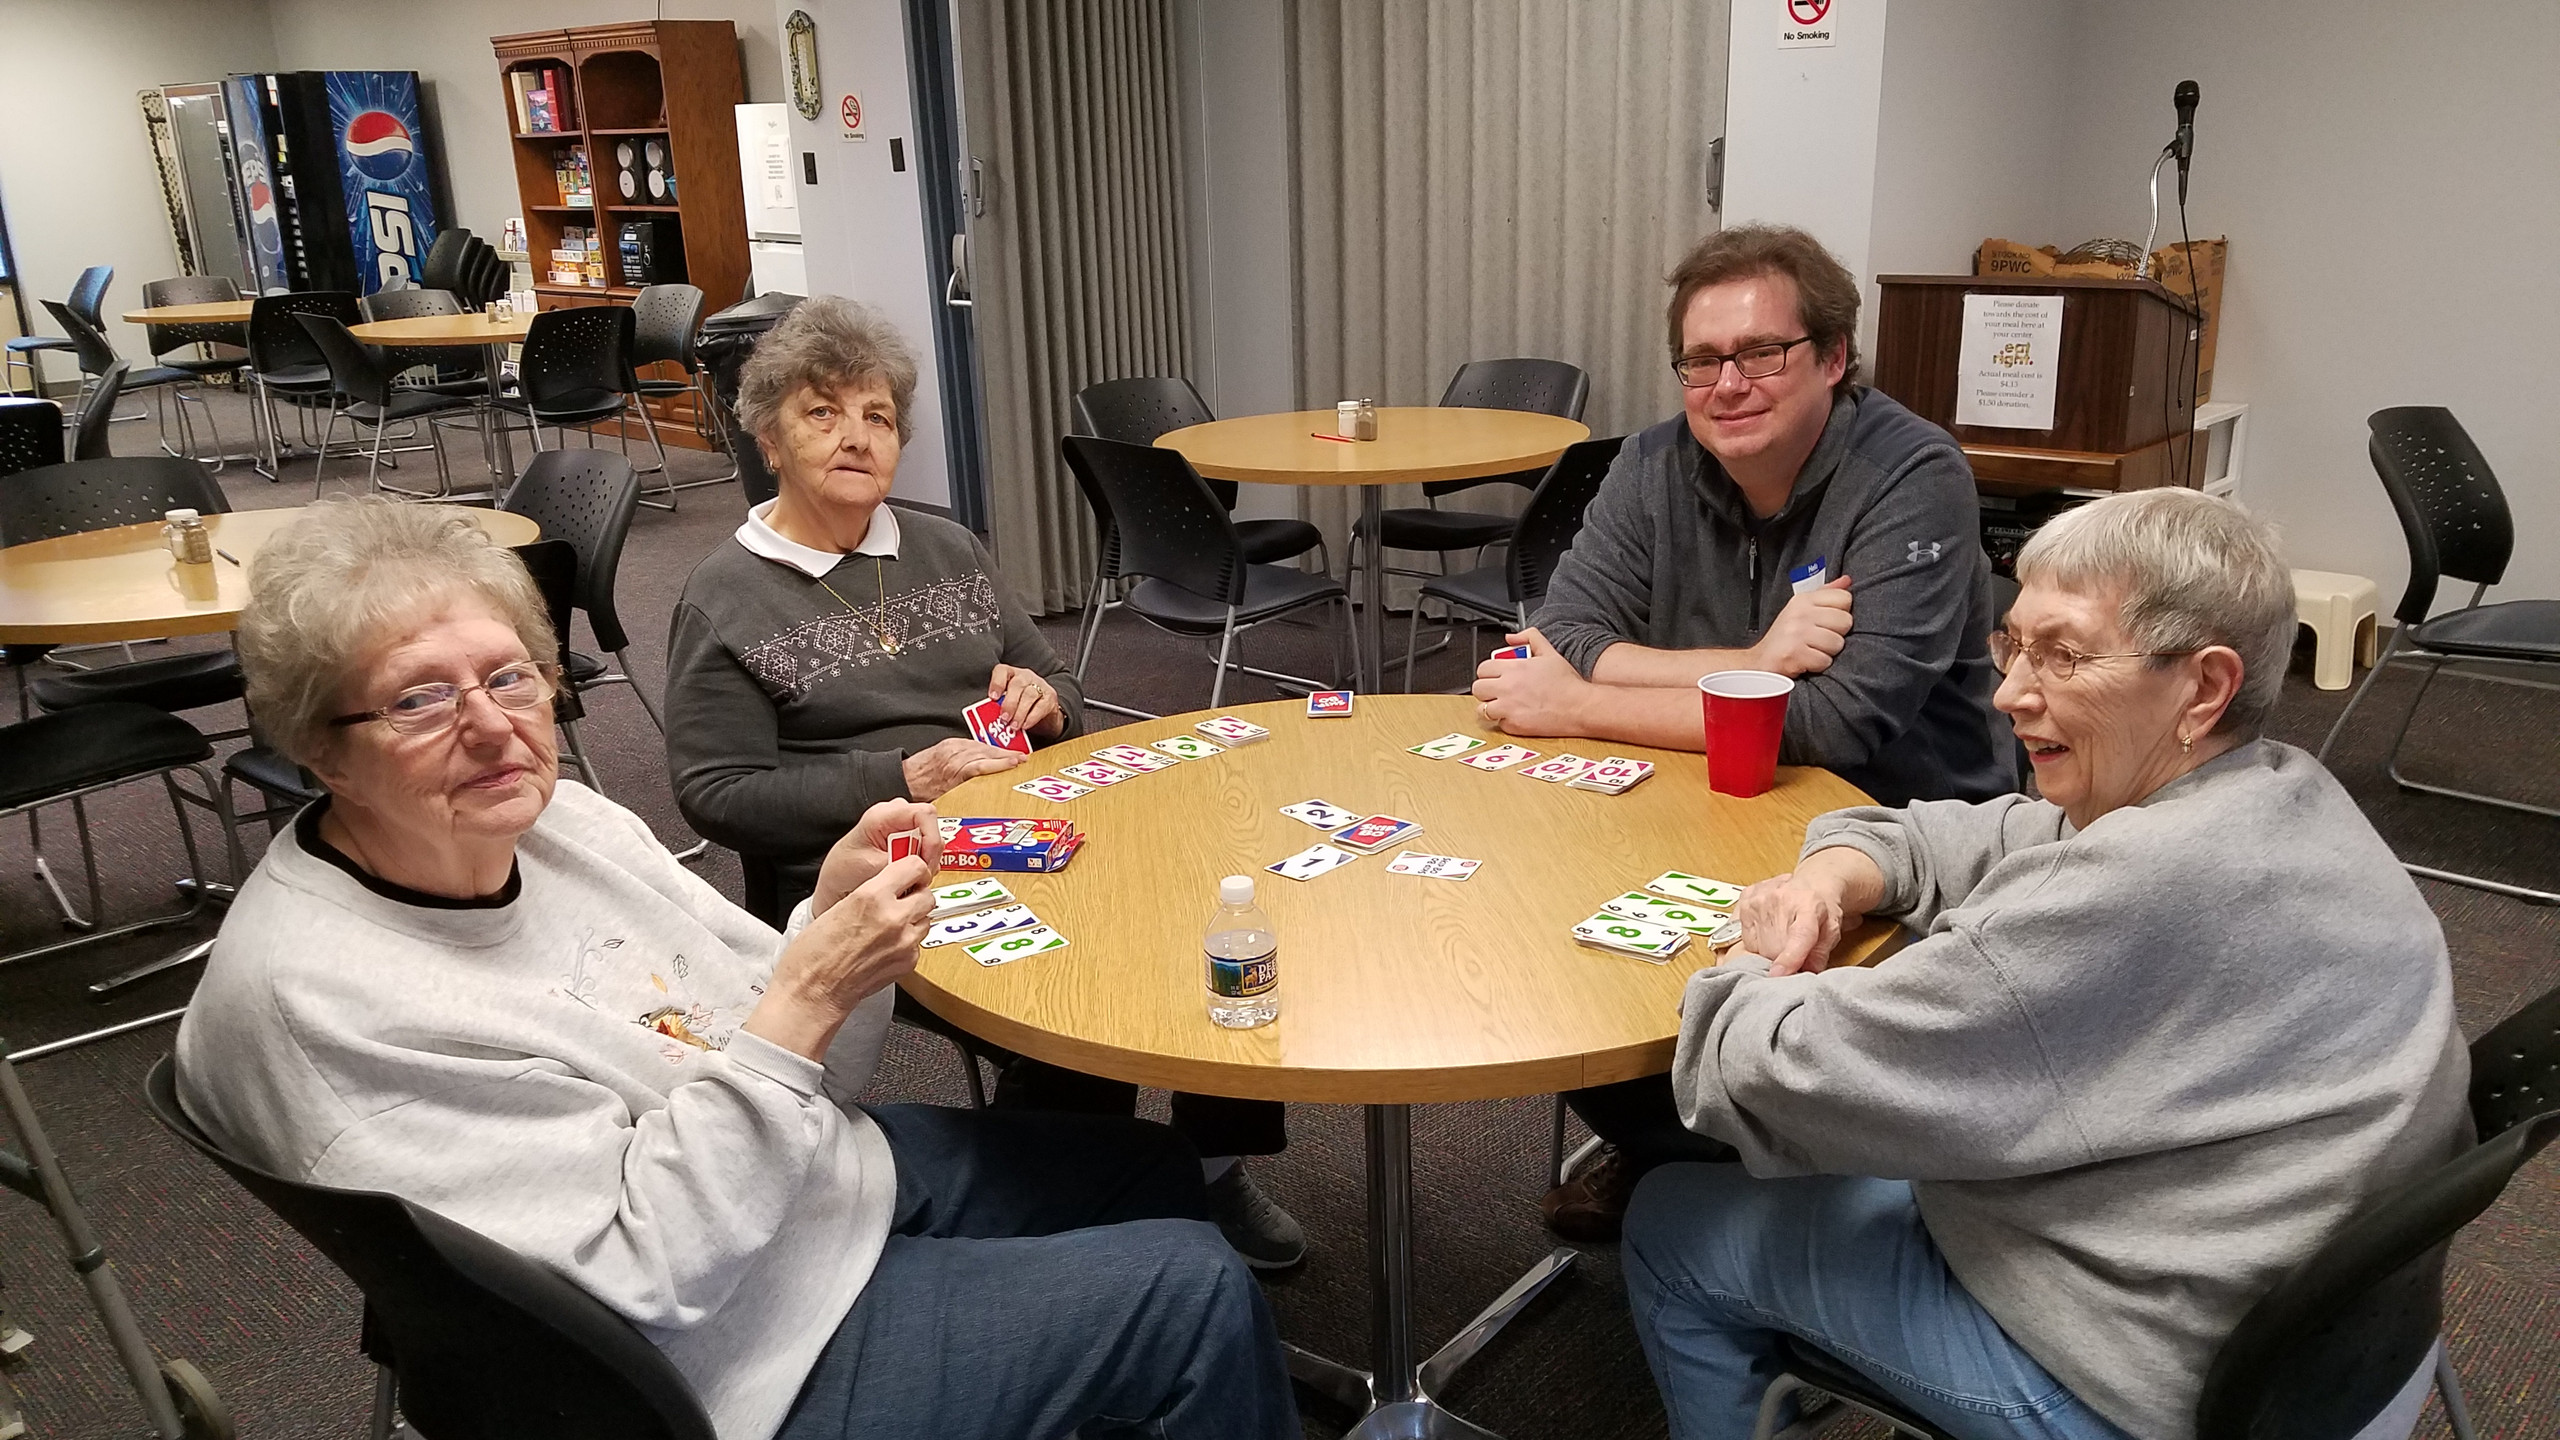 Jeff playing a competitive game of cards with Philipsburg residents Ms. McGlone, Mr. Conklin, and Ms. Bair.